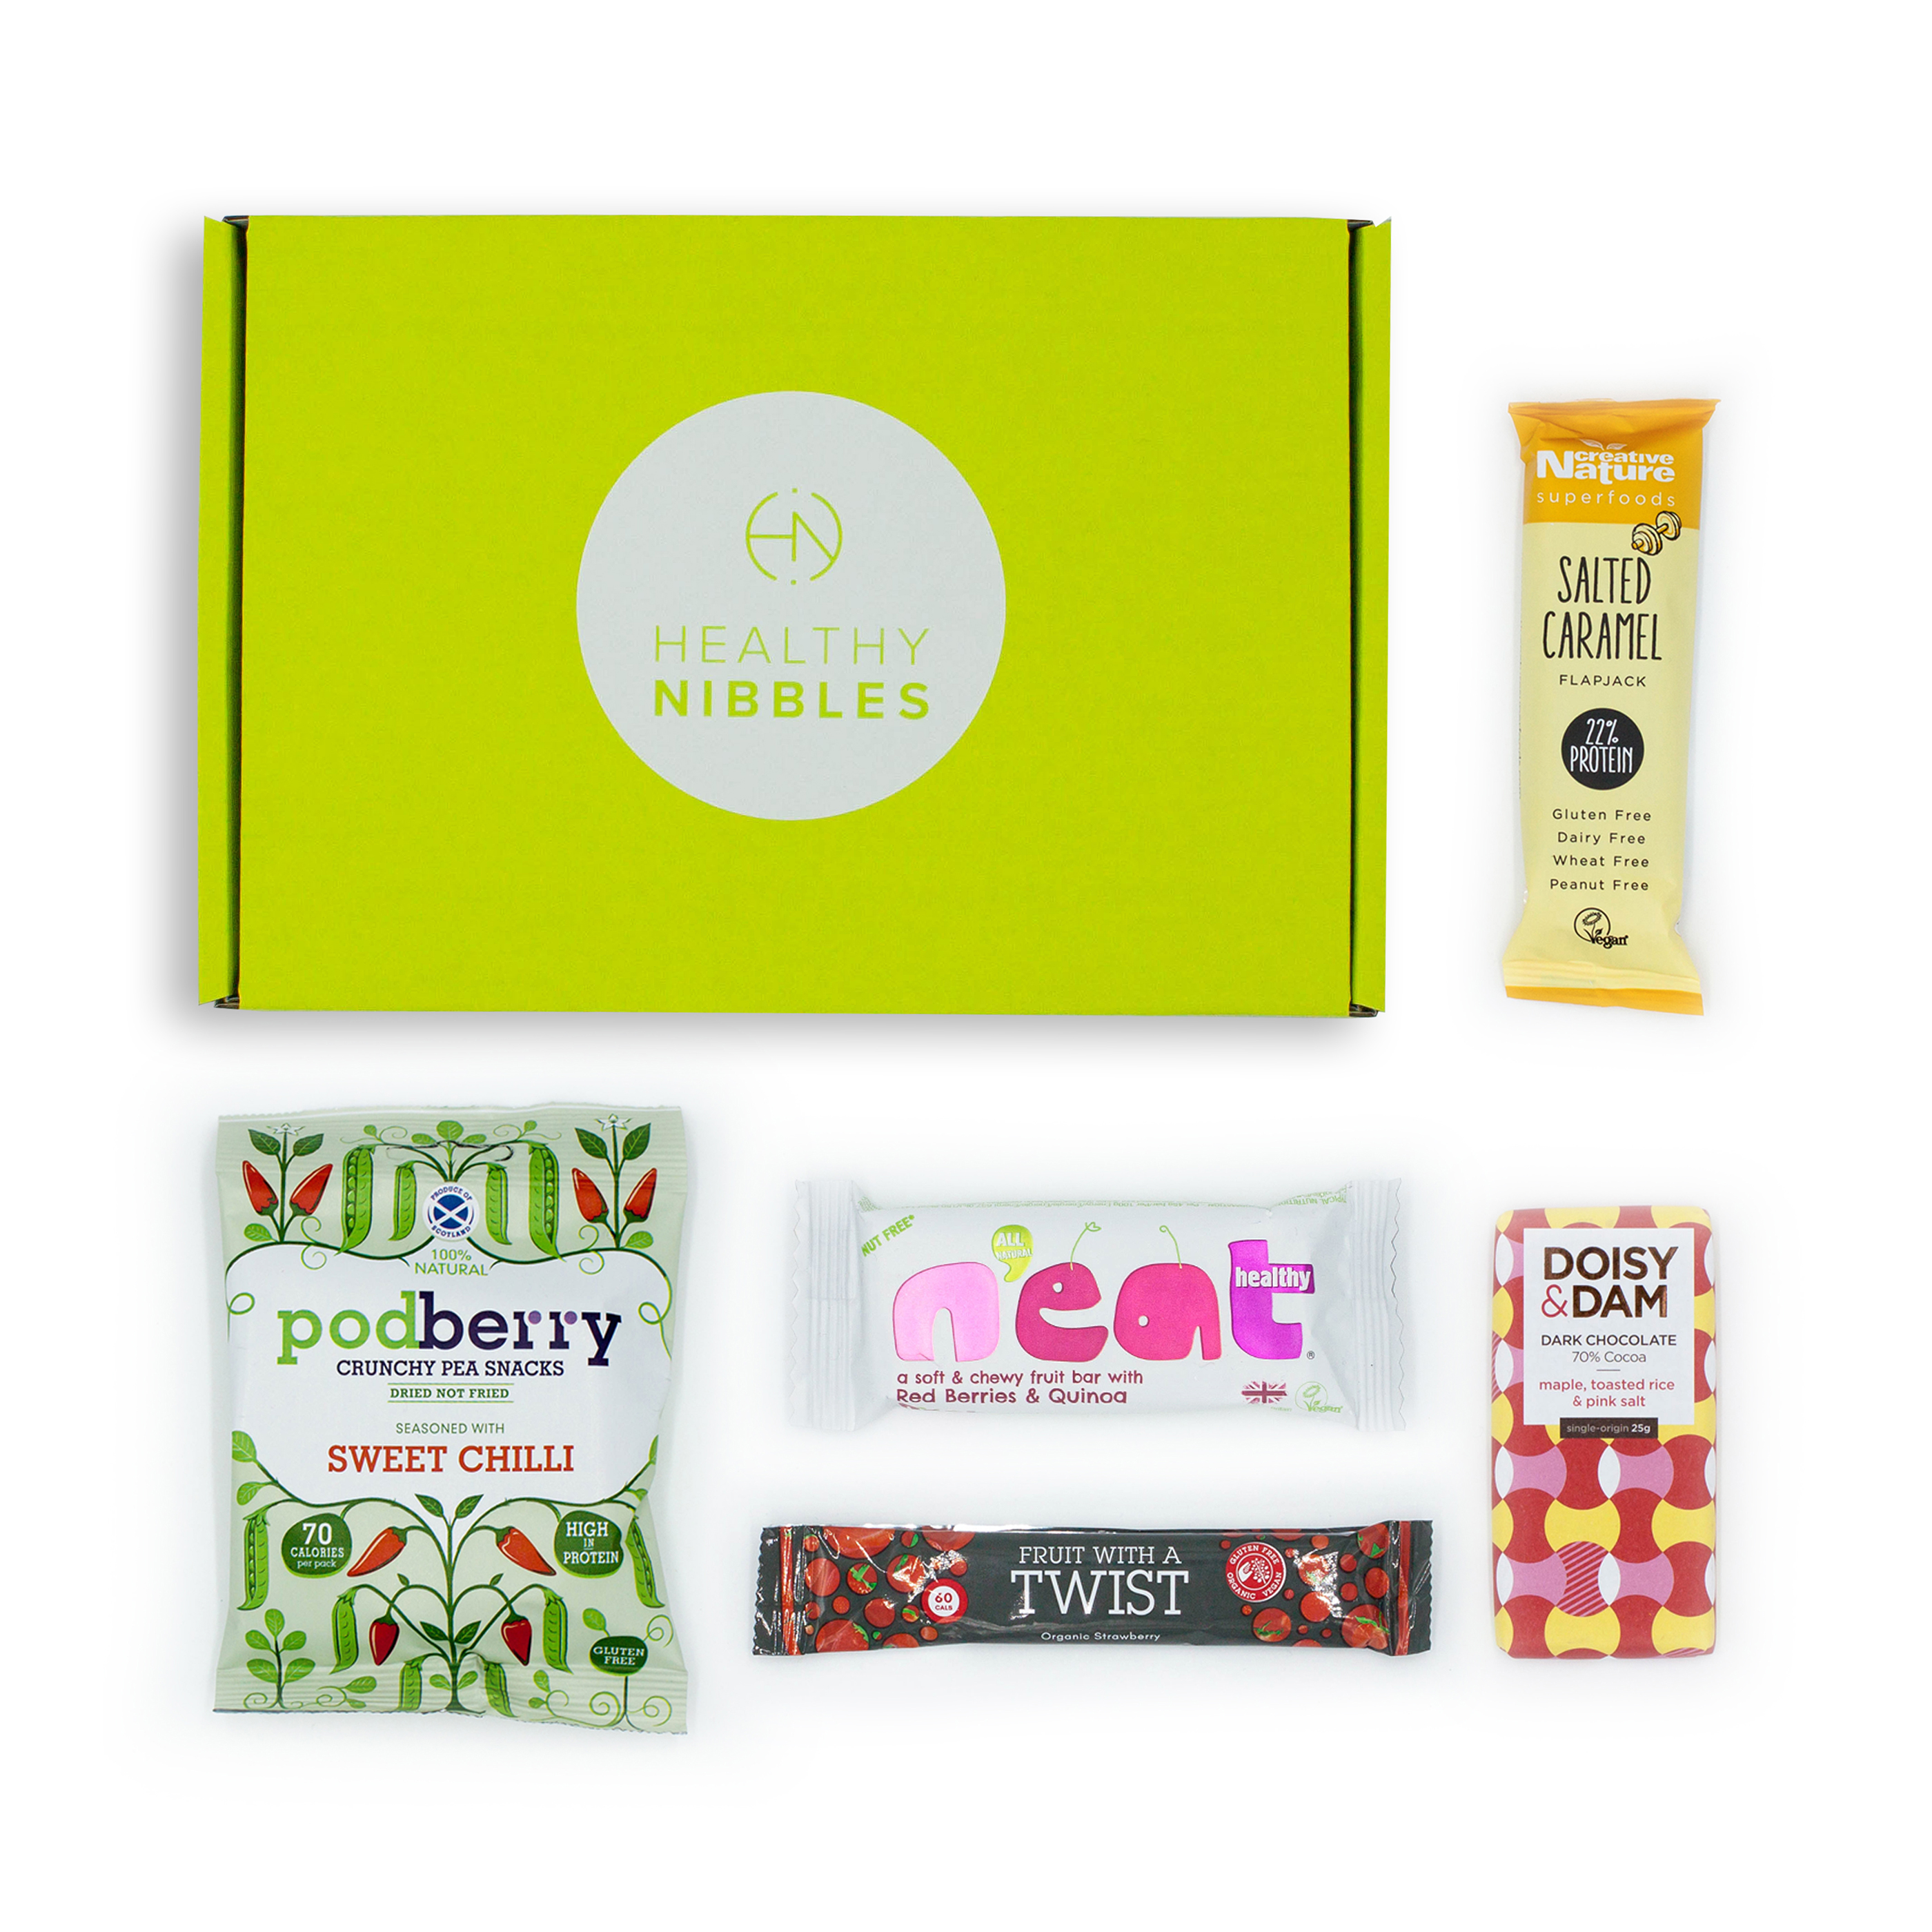 Limitless Healthy Nibbles Nut Free Snack 5 Piece Mini Box Ref NutFree5 *Up to 2-3 Day Leadtime*